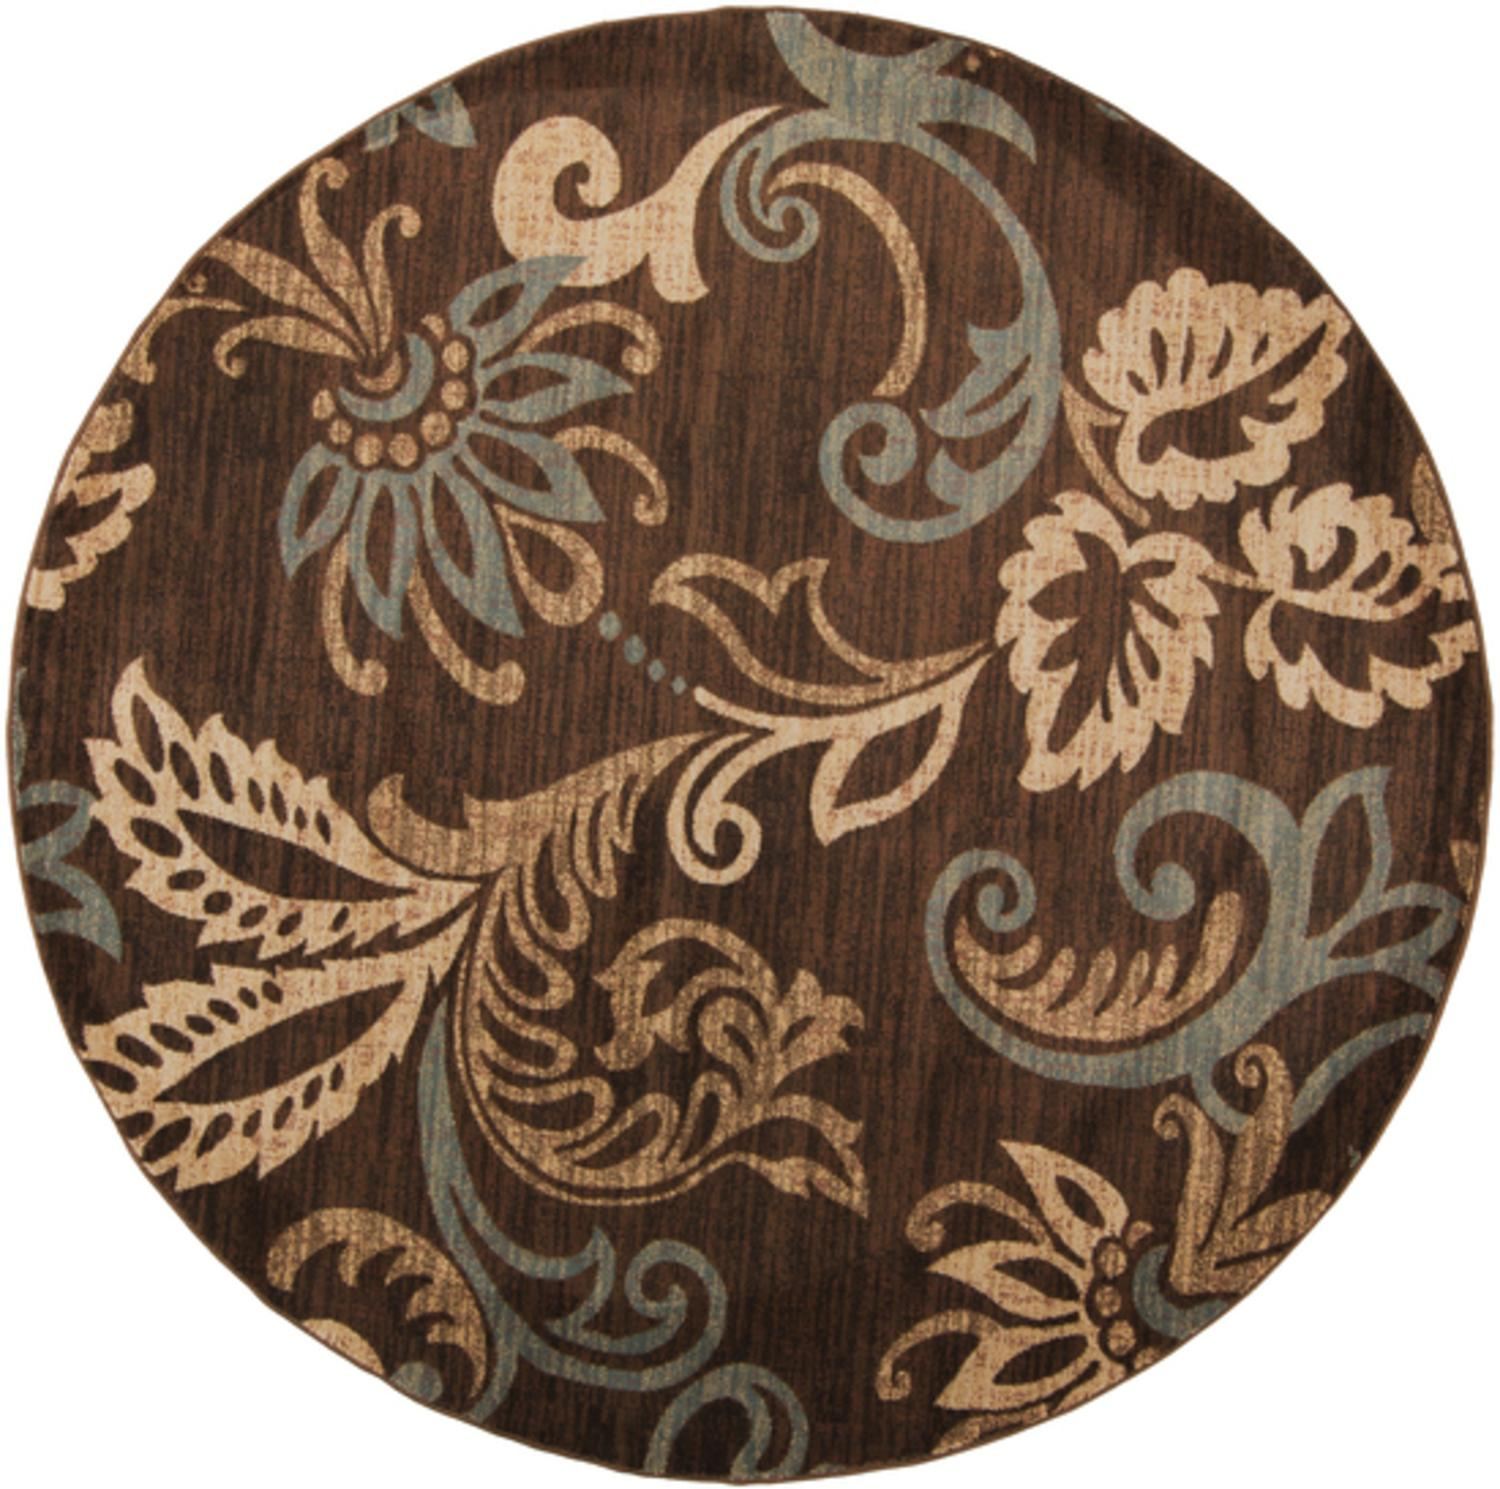 8' Paisley Leaves Brown and Tan Shed-Free Round Area Throw Rug